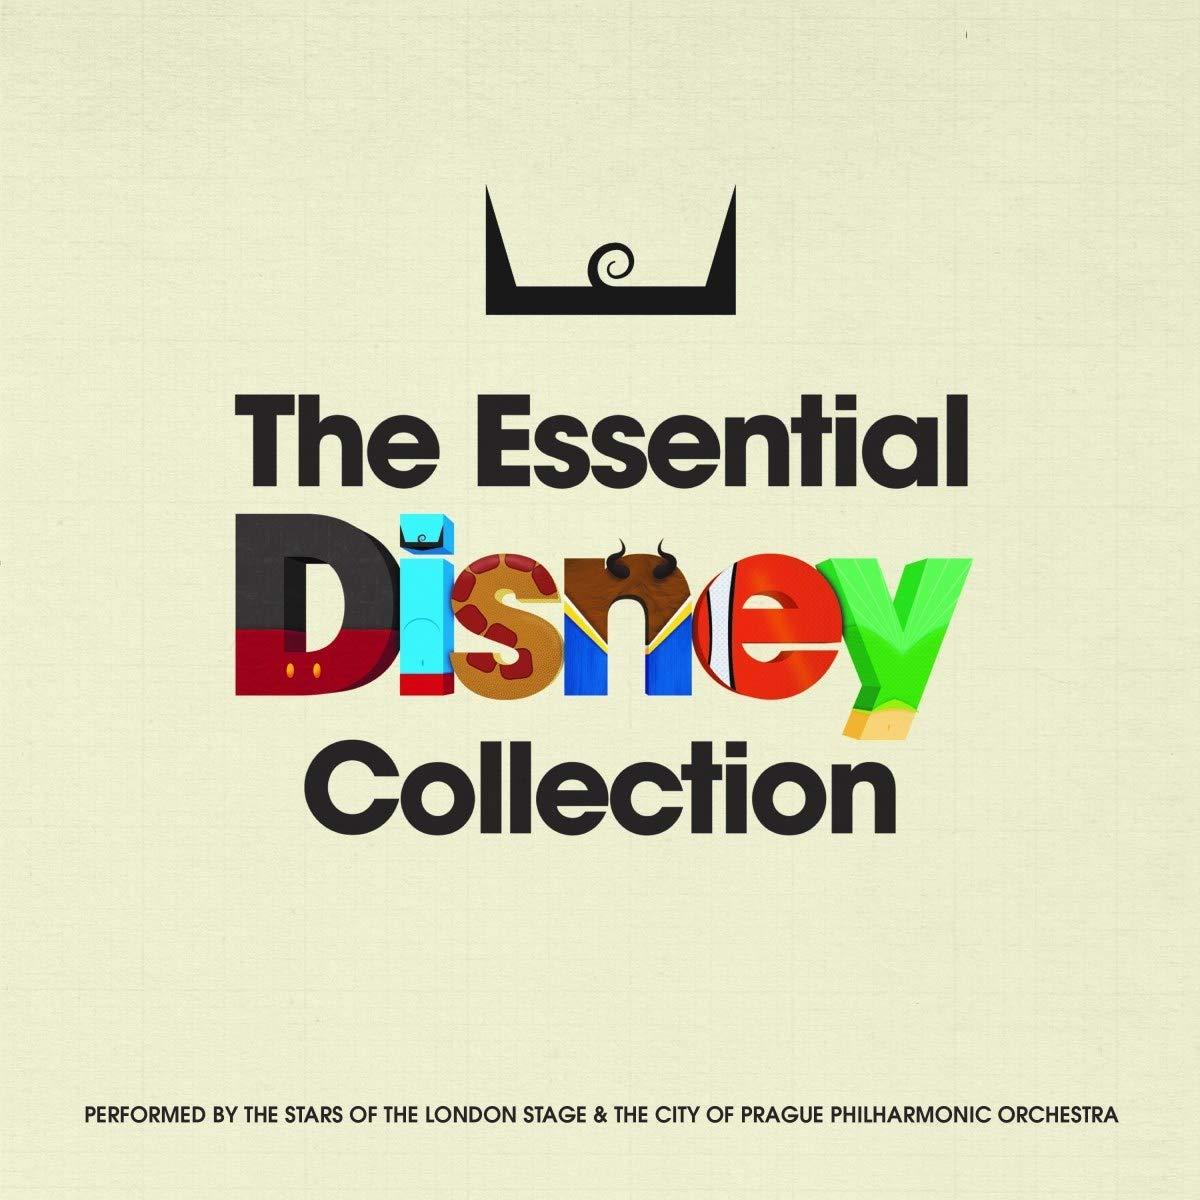 London Music Works & The City Of Prague Philharmonic Orchestra - Essential Disney Collection, tHE [2LP] - Urban Vinyl | Records, Headphones, and more.